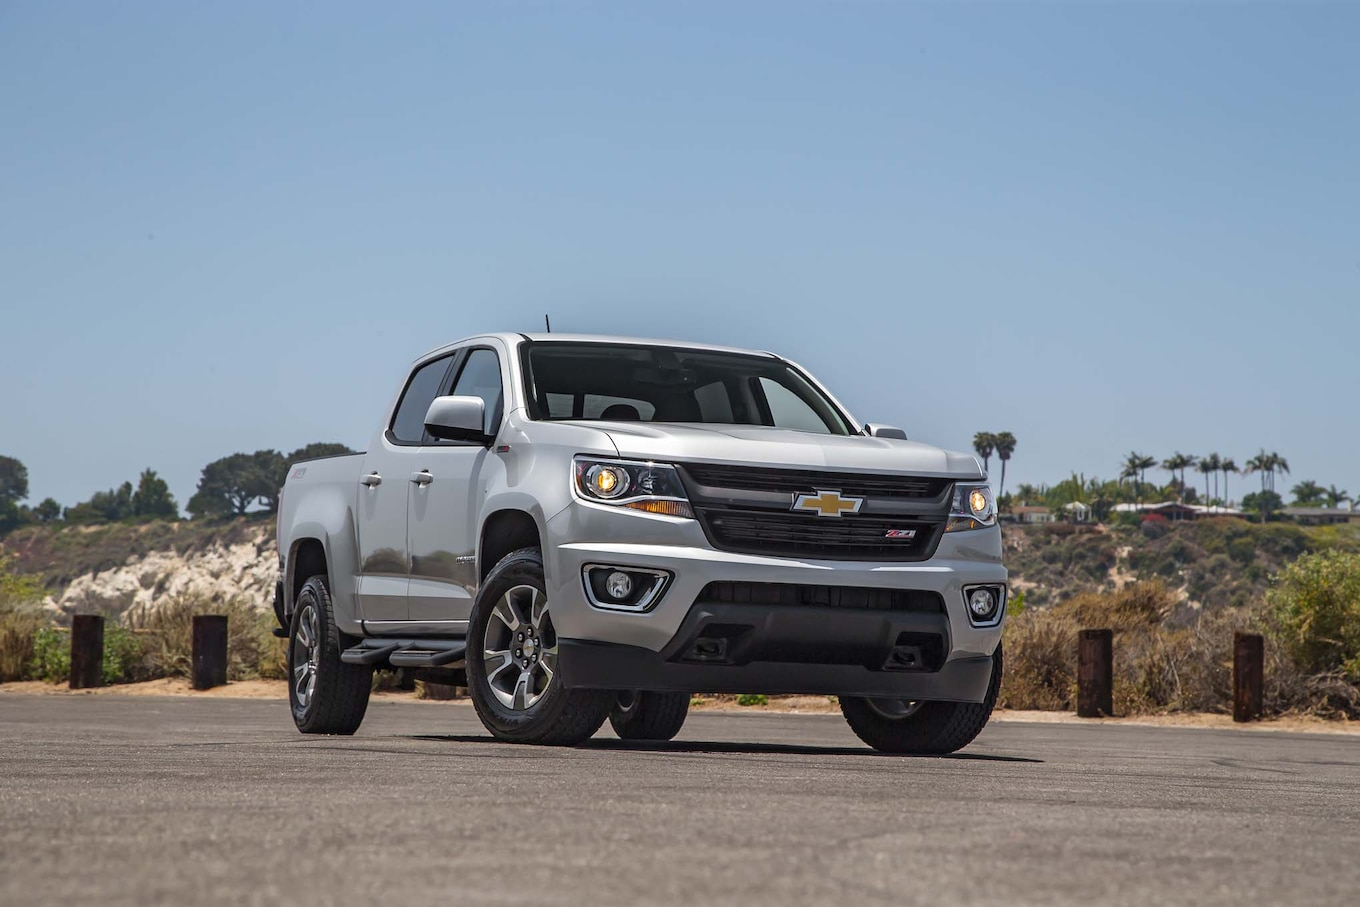 small resolution of 2016 chevrolet colorado z71 diesel update 5 real mpg without an airduramax diesel engine diagram rear